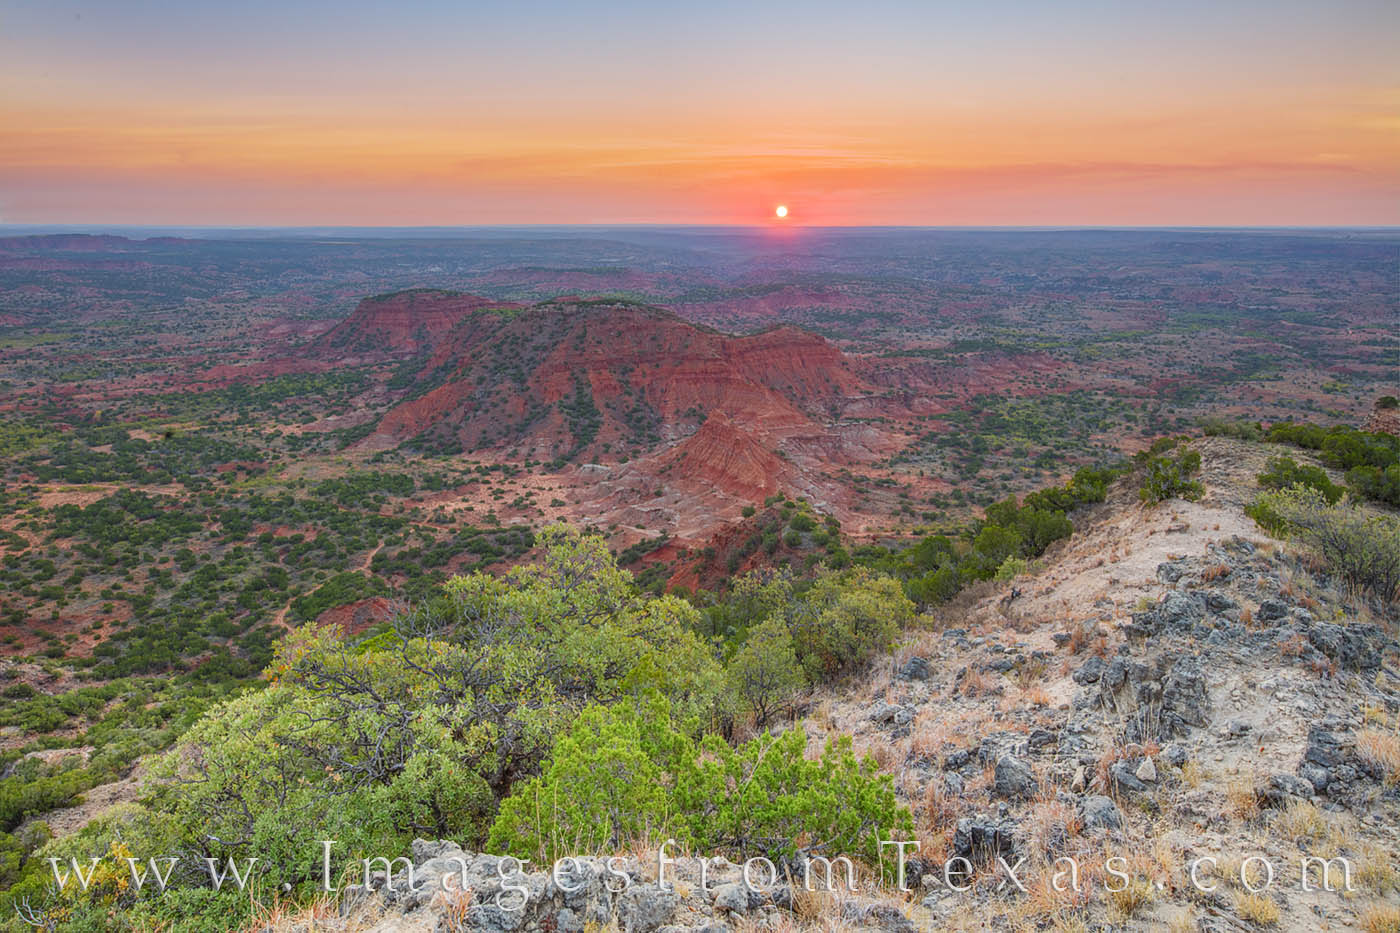 On a quiet morning high atop Haynes Ridge in Caprock Canyon, the sun made its appeaerance on the horizon. The first light colored...